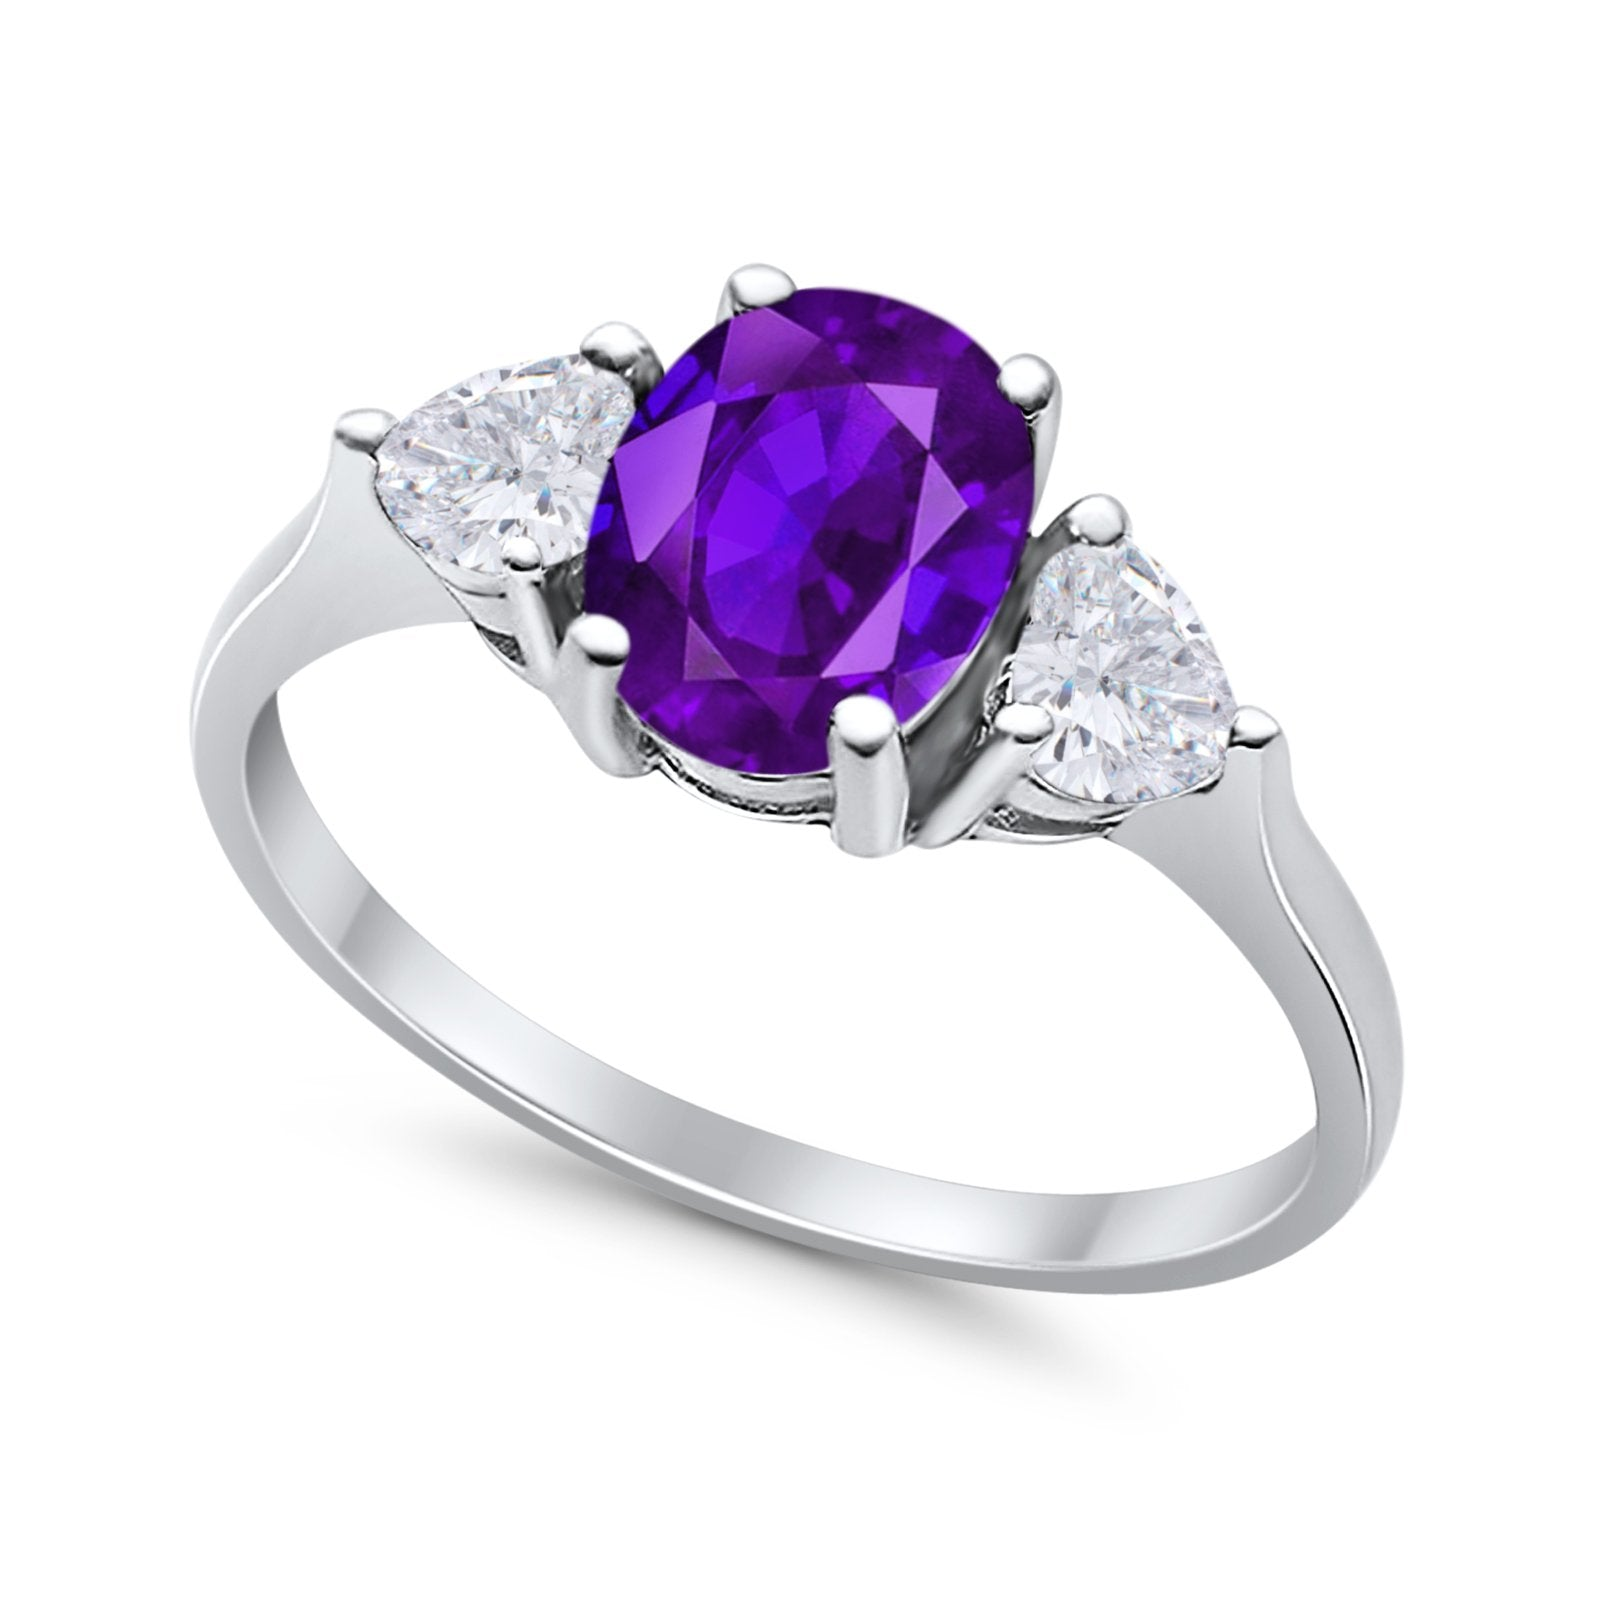 Fashion Promise Simulated Amethyst CZ Ring 925 Sterling Silver